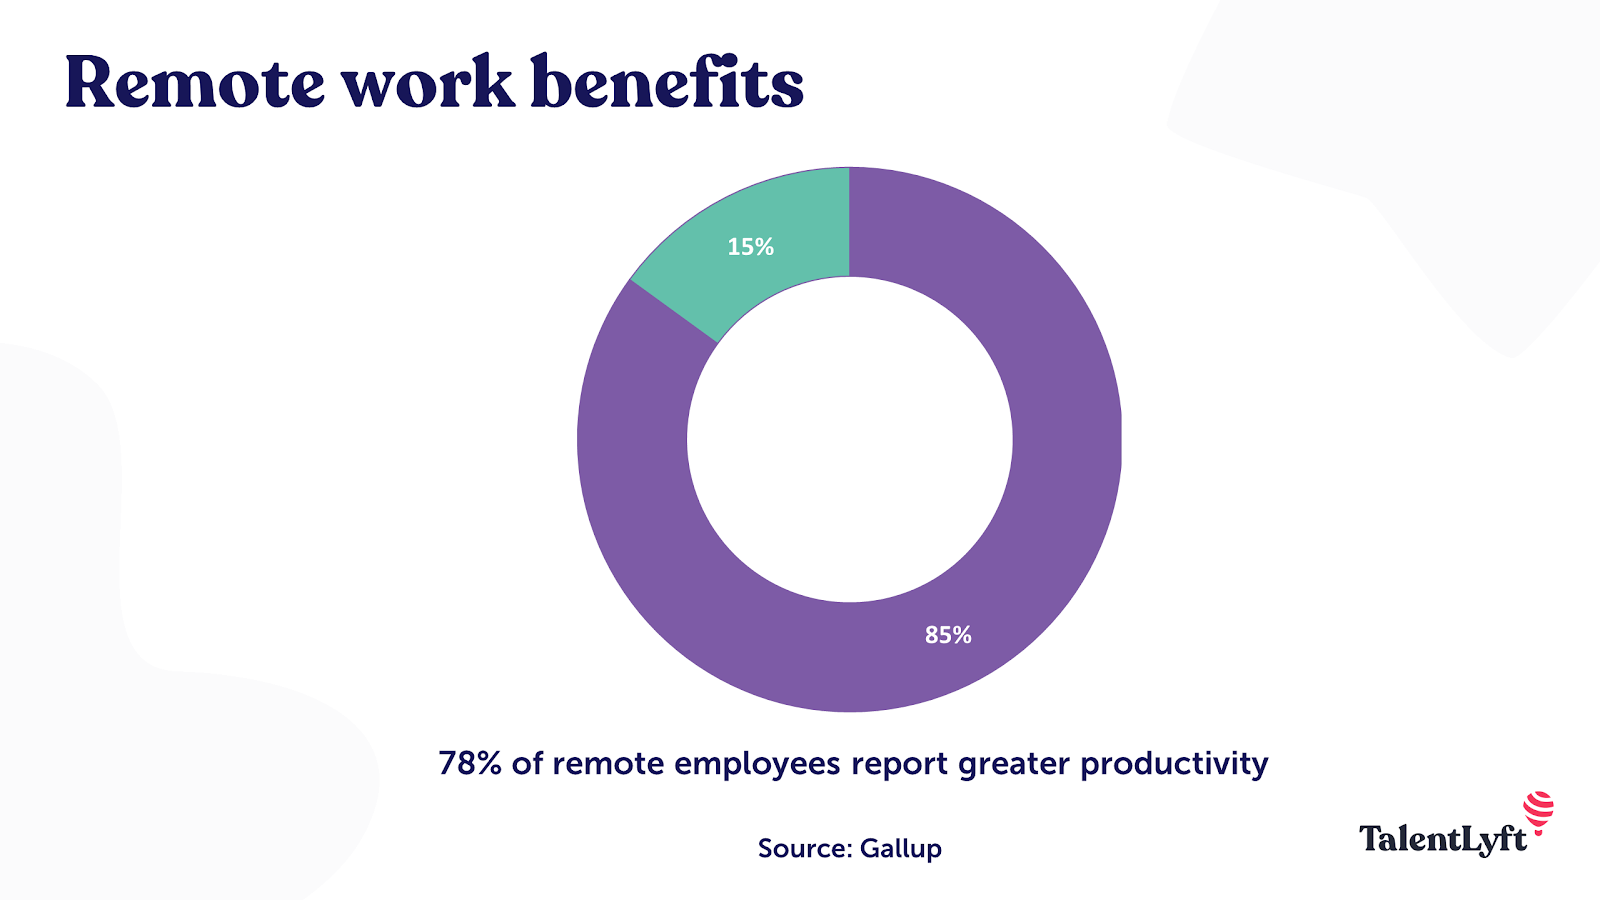 Remote work benefits